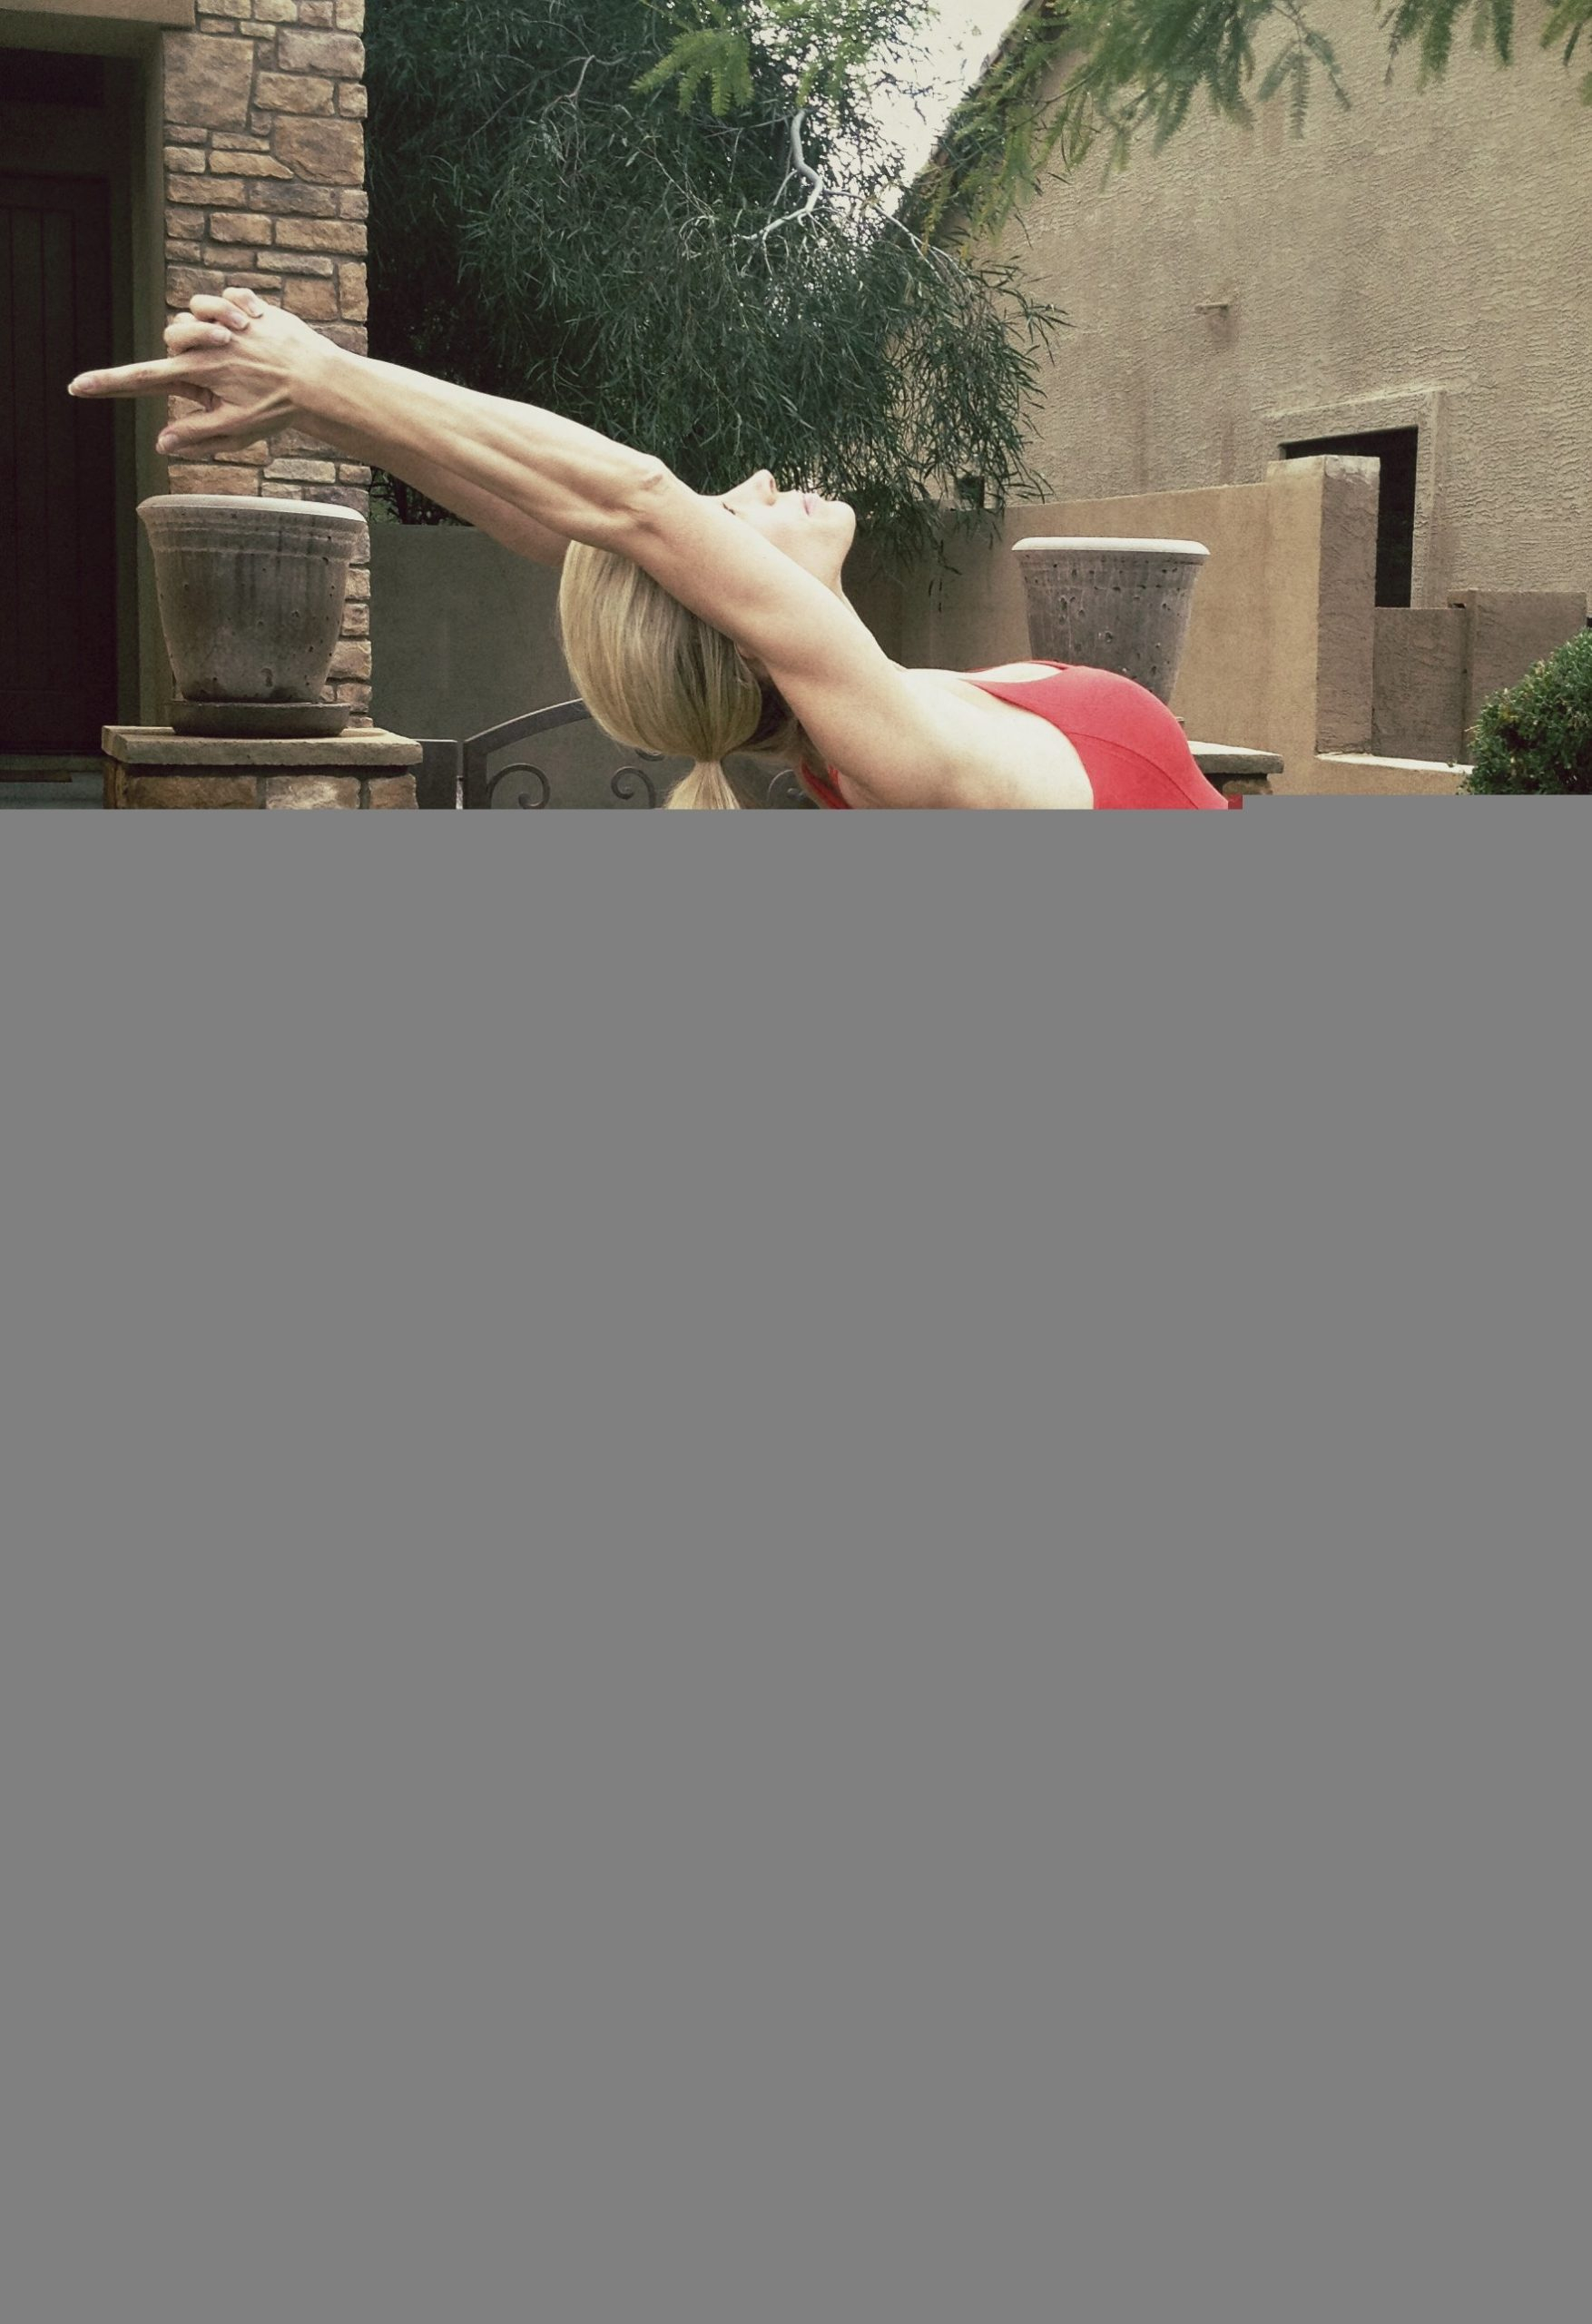 #YogaWorkout with #HeidiPowell Raised Arm Yoga Pose - Learn more at https://heidipowell.net/305